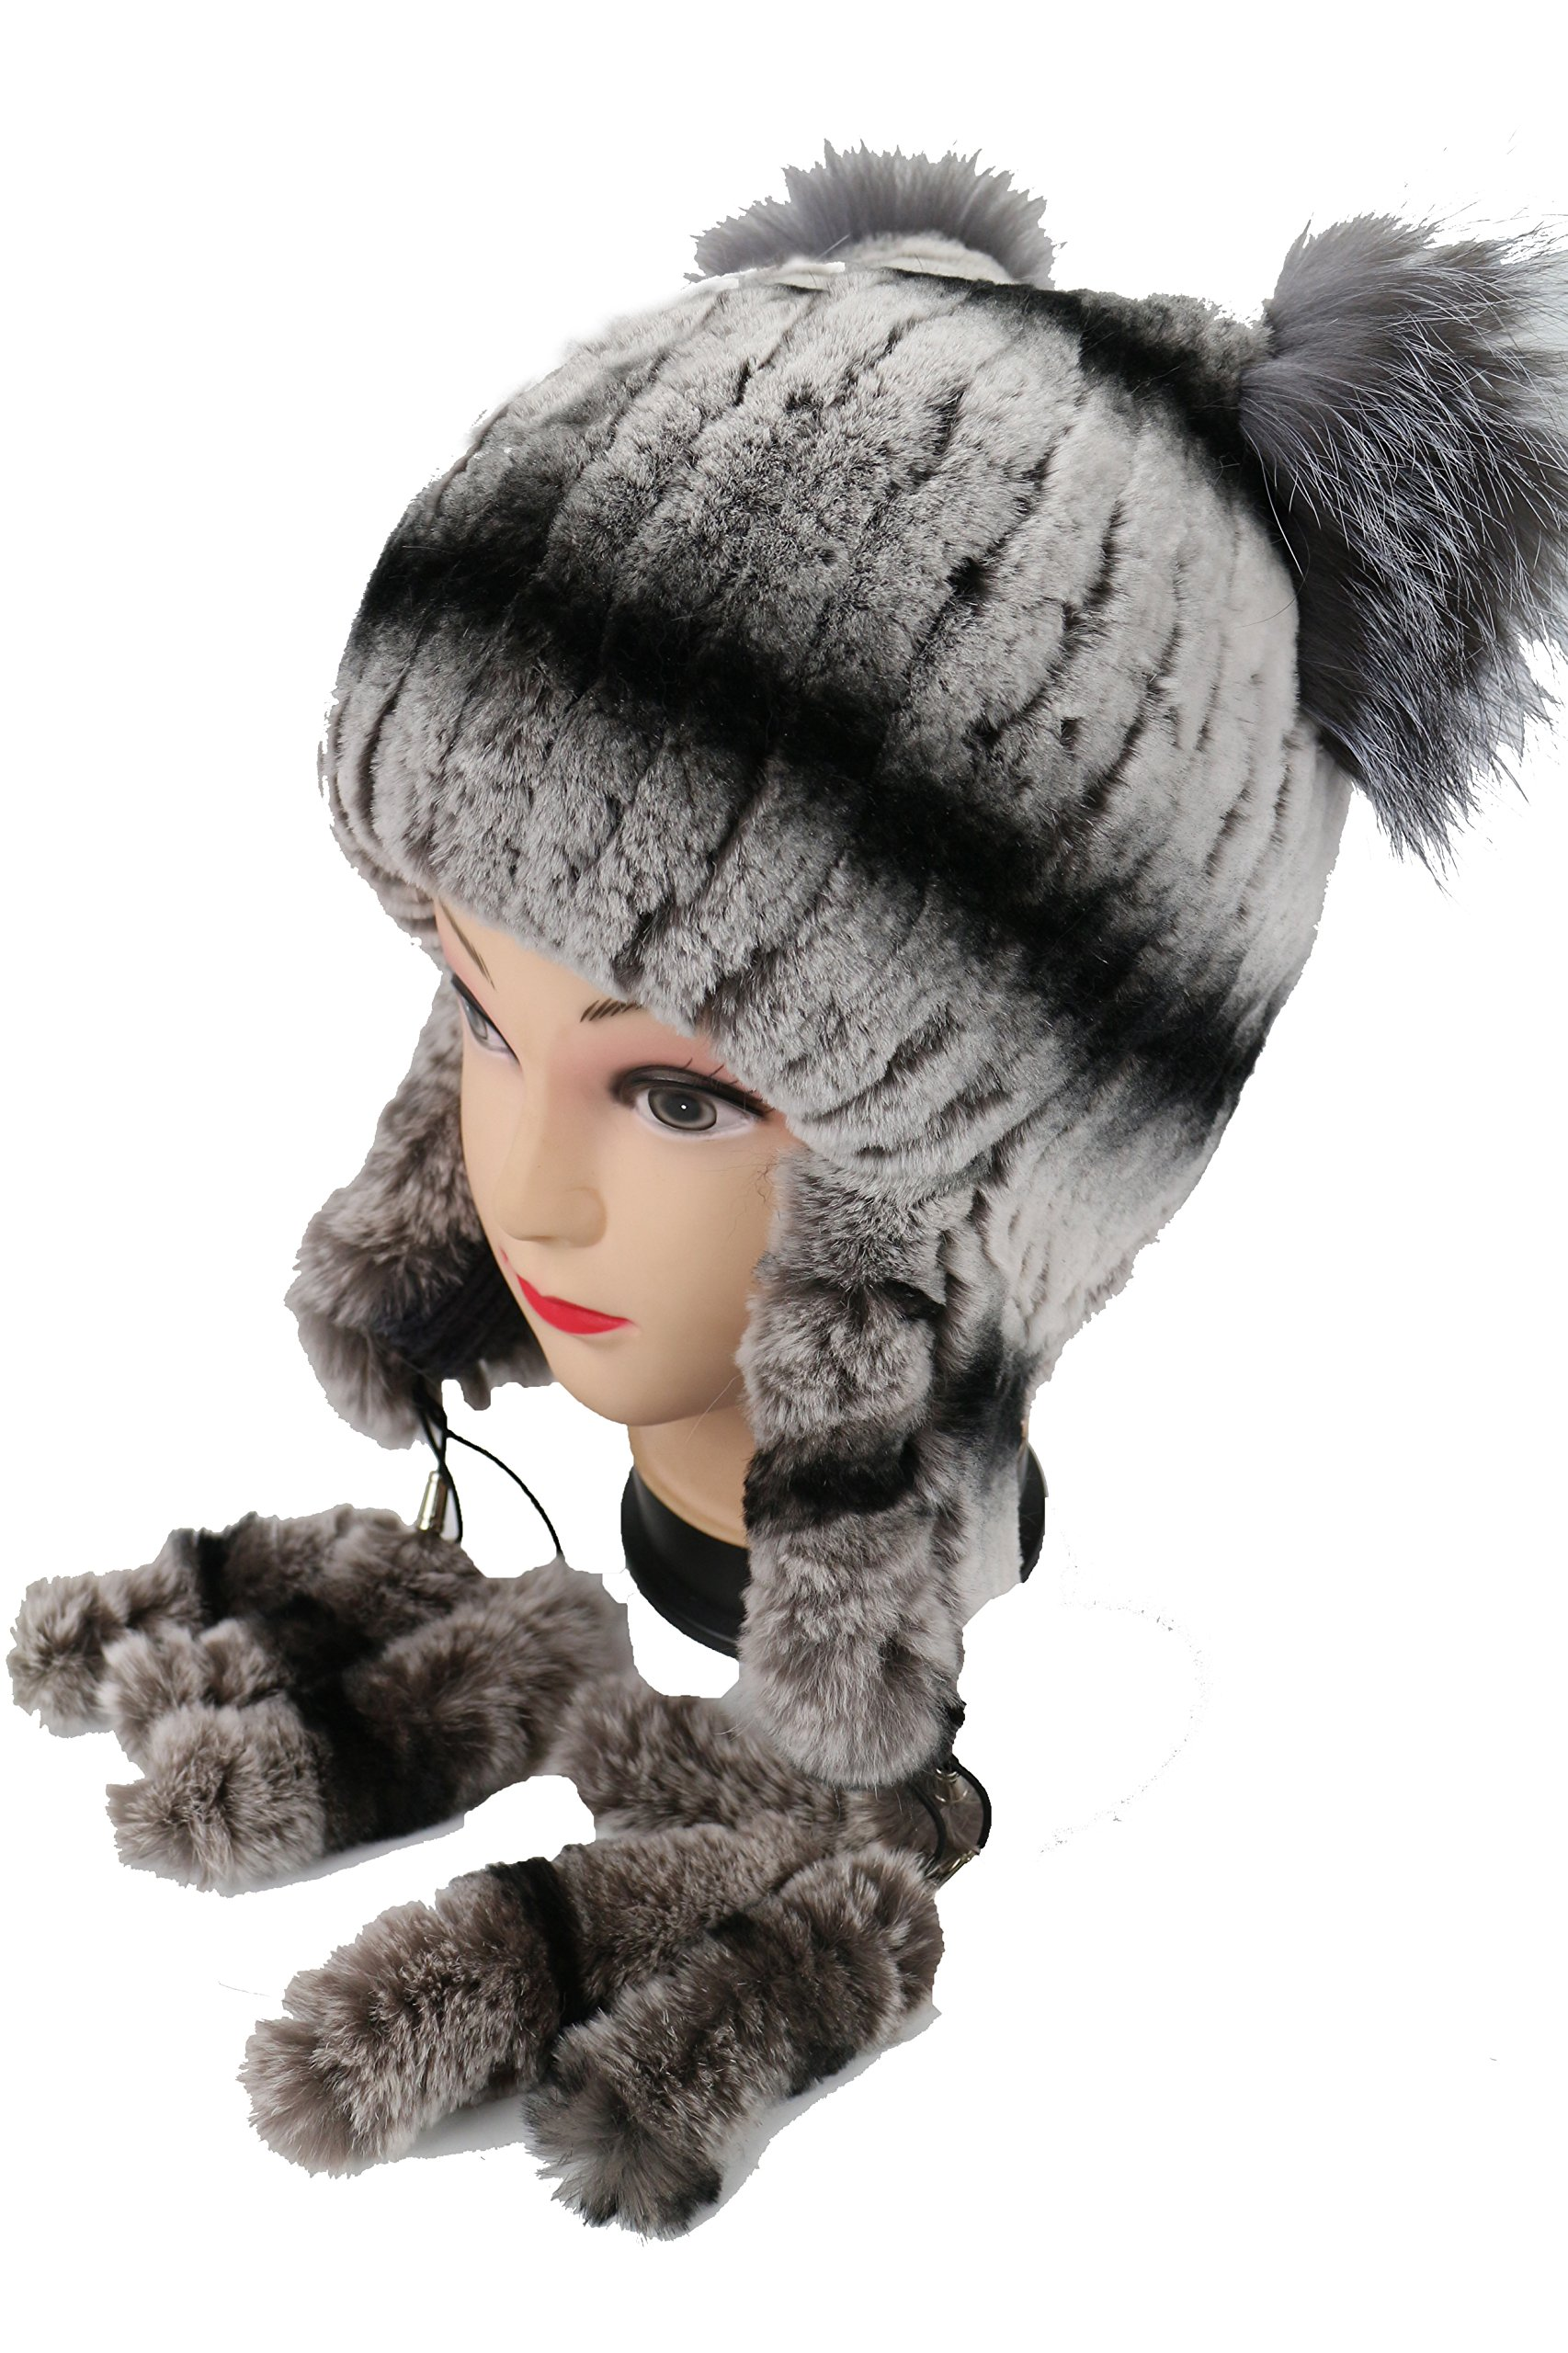 Ysting Womens Knit Rex Rabbit Fur Beanie Hat with Silver Fox Fur Top Natural Fur Hats Earmuff (A) by Ysting&CO (Image #1)